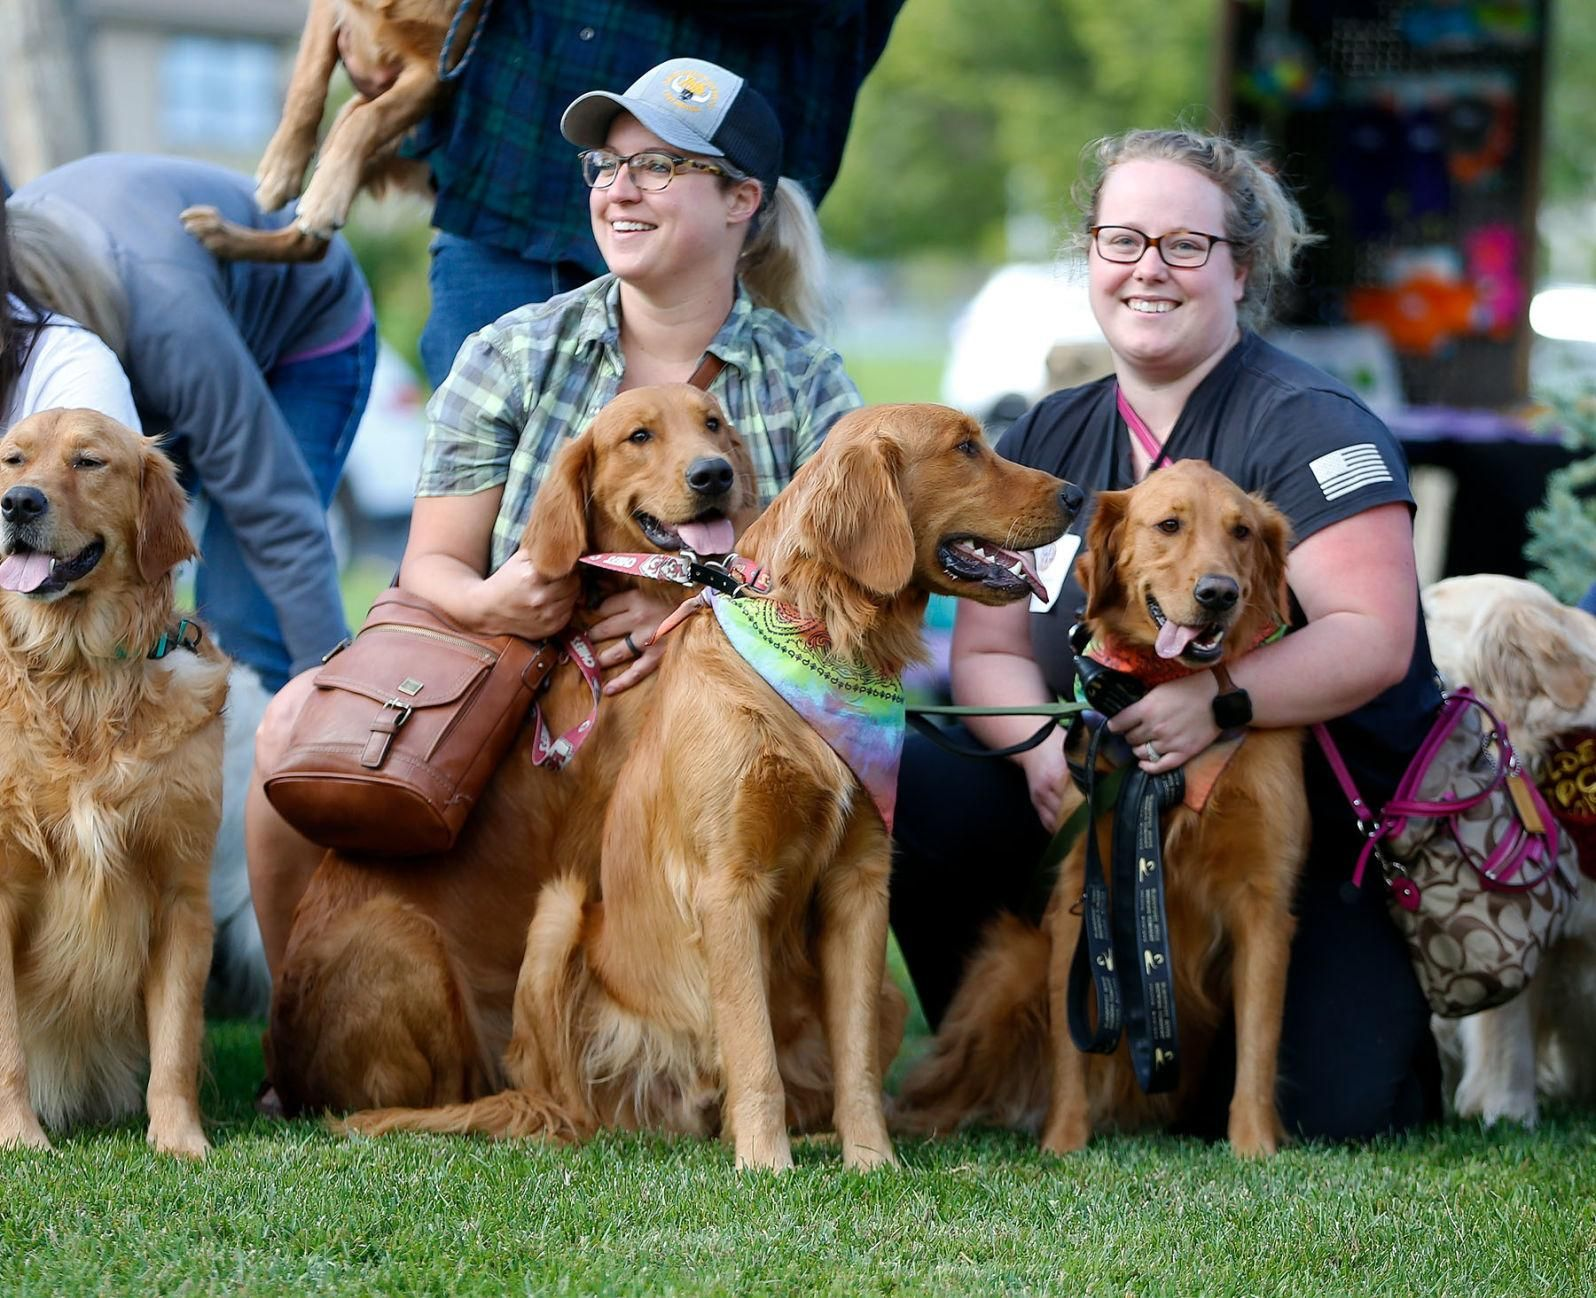 Goldenstock 2019 Dozens Of Golden Retrievers And Their Owners